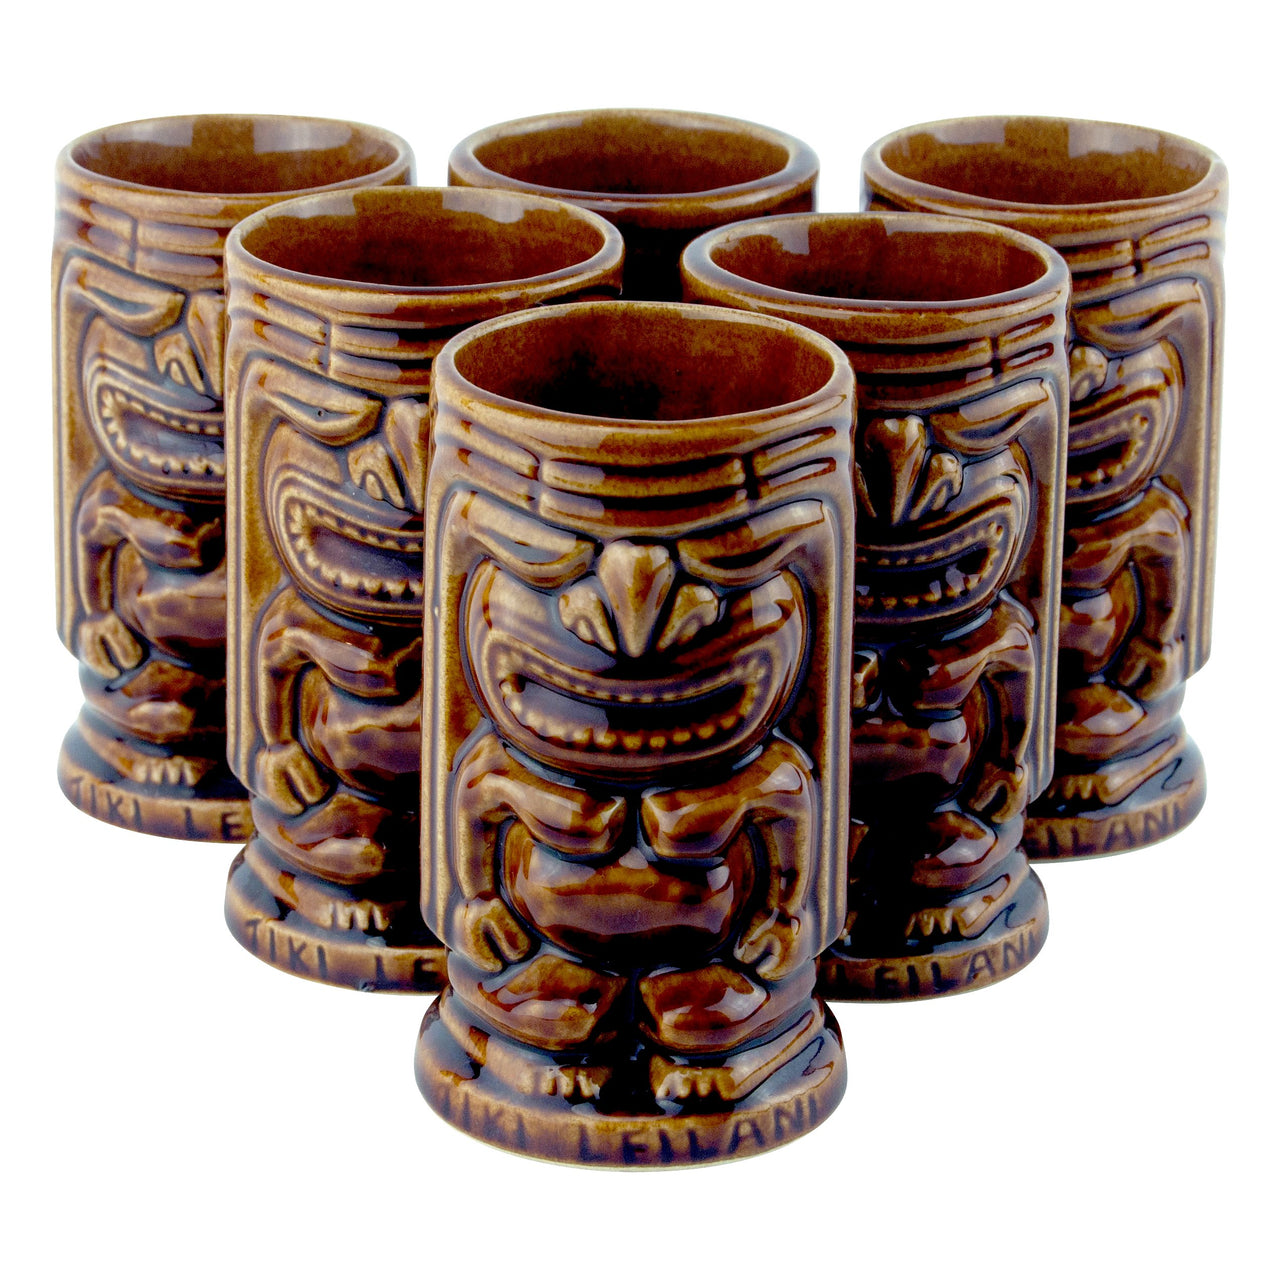 Vintage Leilani Brown Ceramic Tiki Mugs | Tiki Bar Glassware